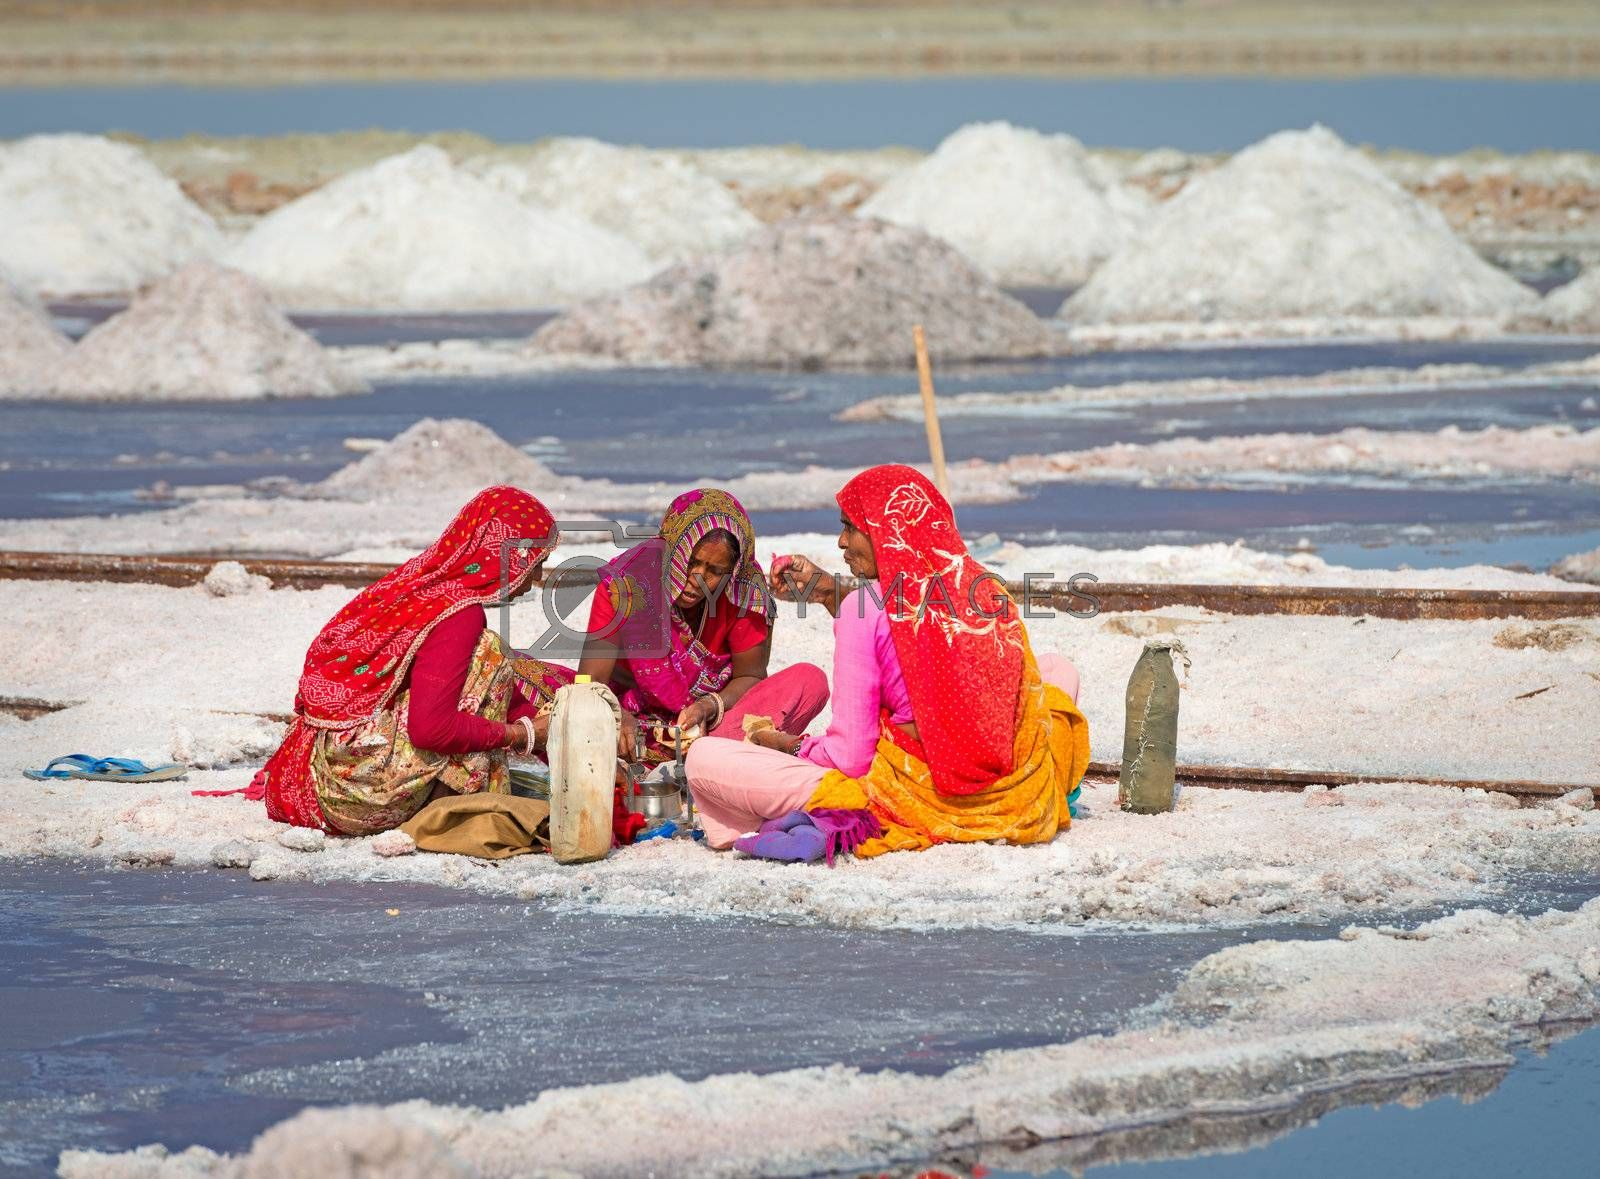 Sambhar, India - Nov 19: Workers take a lunch break in salt farm on Nov 19, 2012 in Sambhar Salt Lake, India. It is India's largest saline lake and and where salt has been farmed for a thousand years